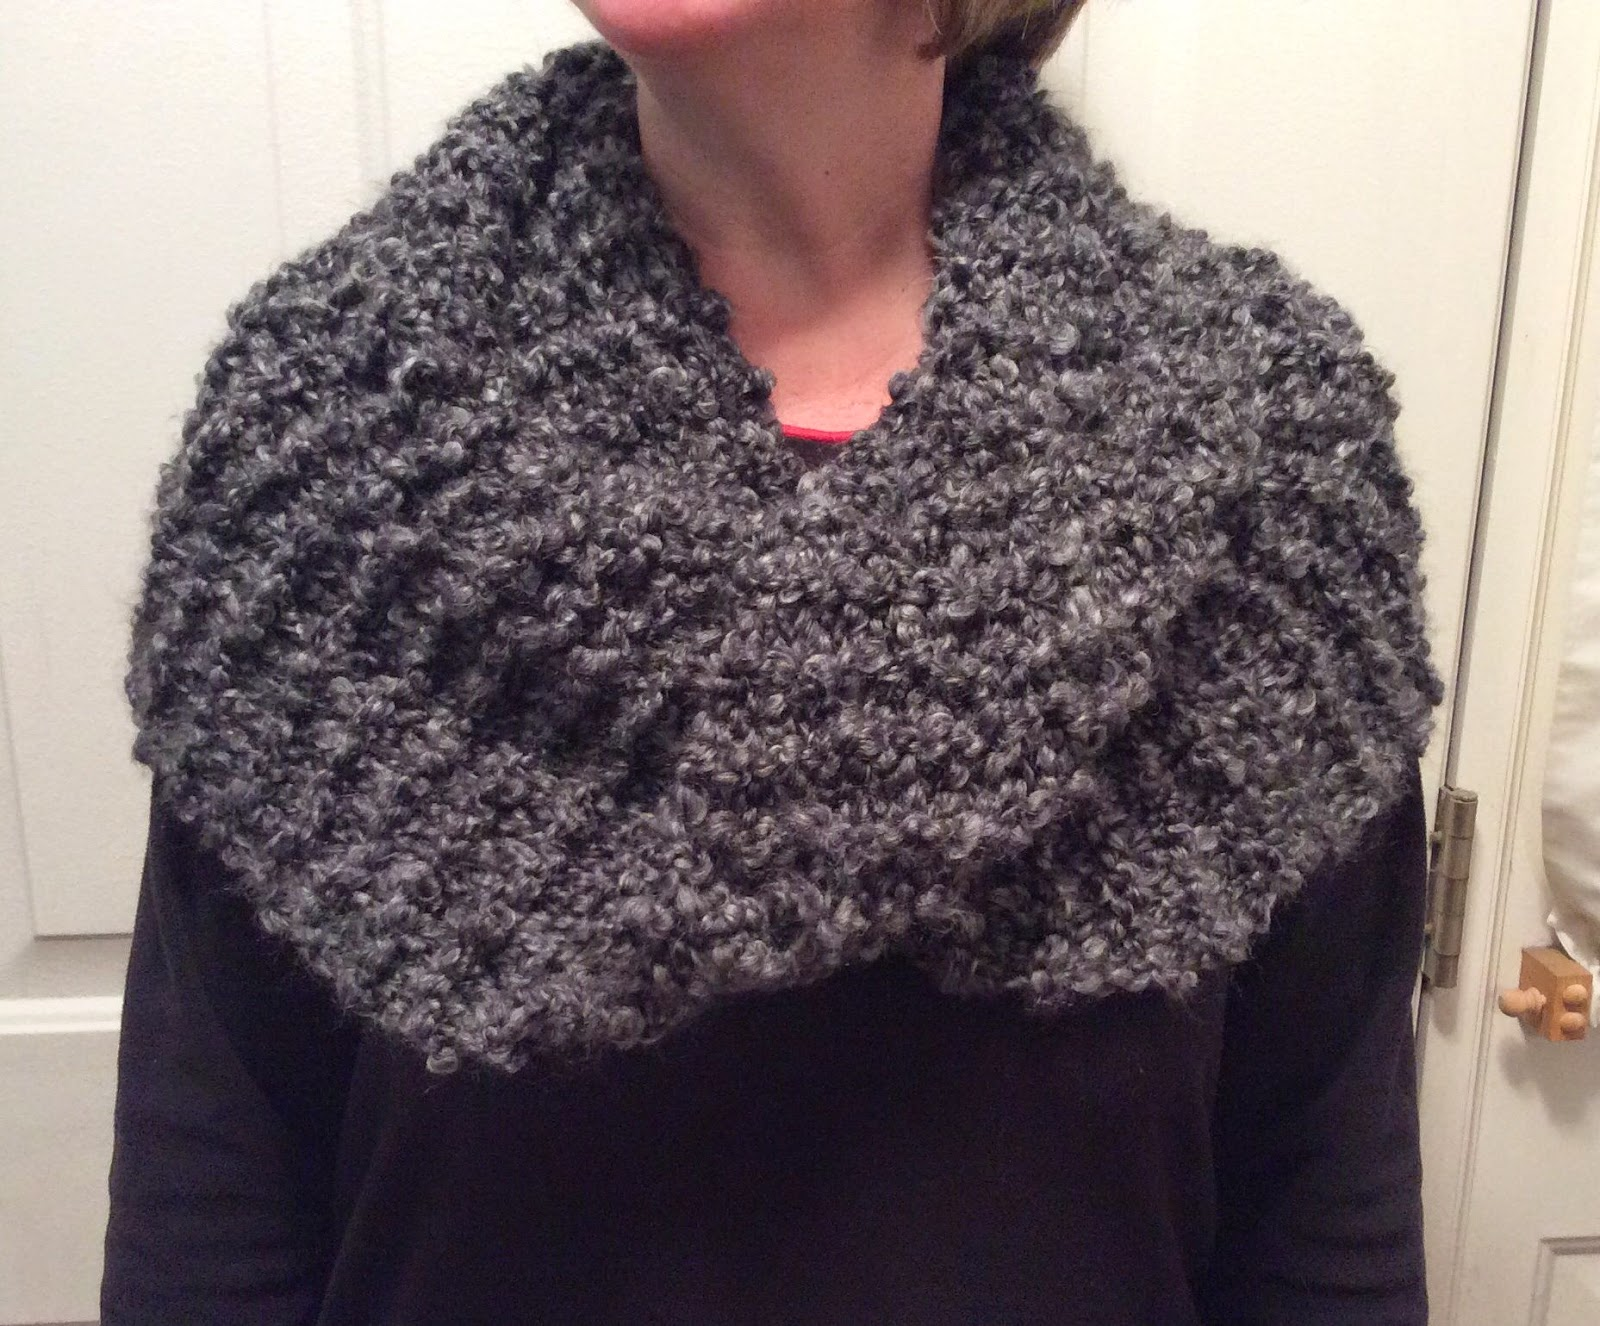 Knitting with Schnapps: Schnapps Mobius Shawl!